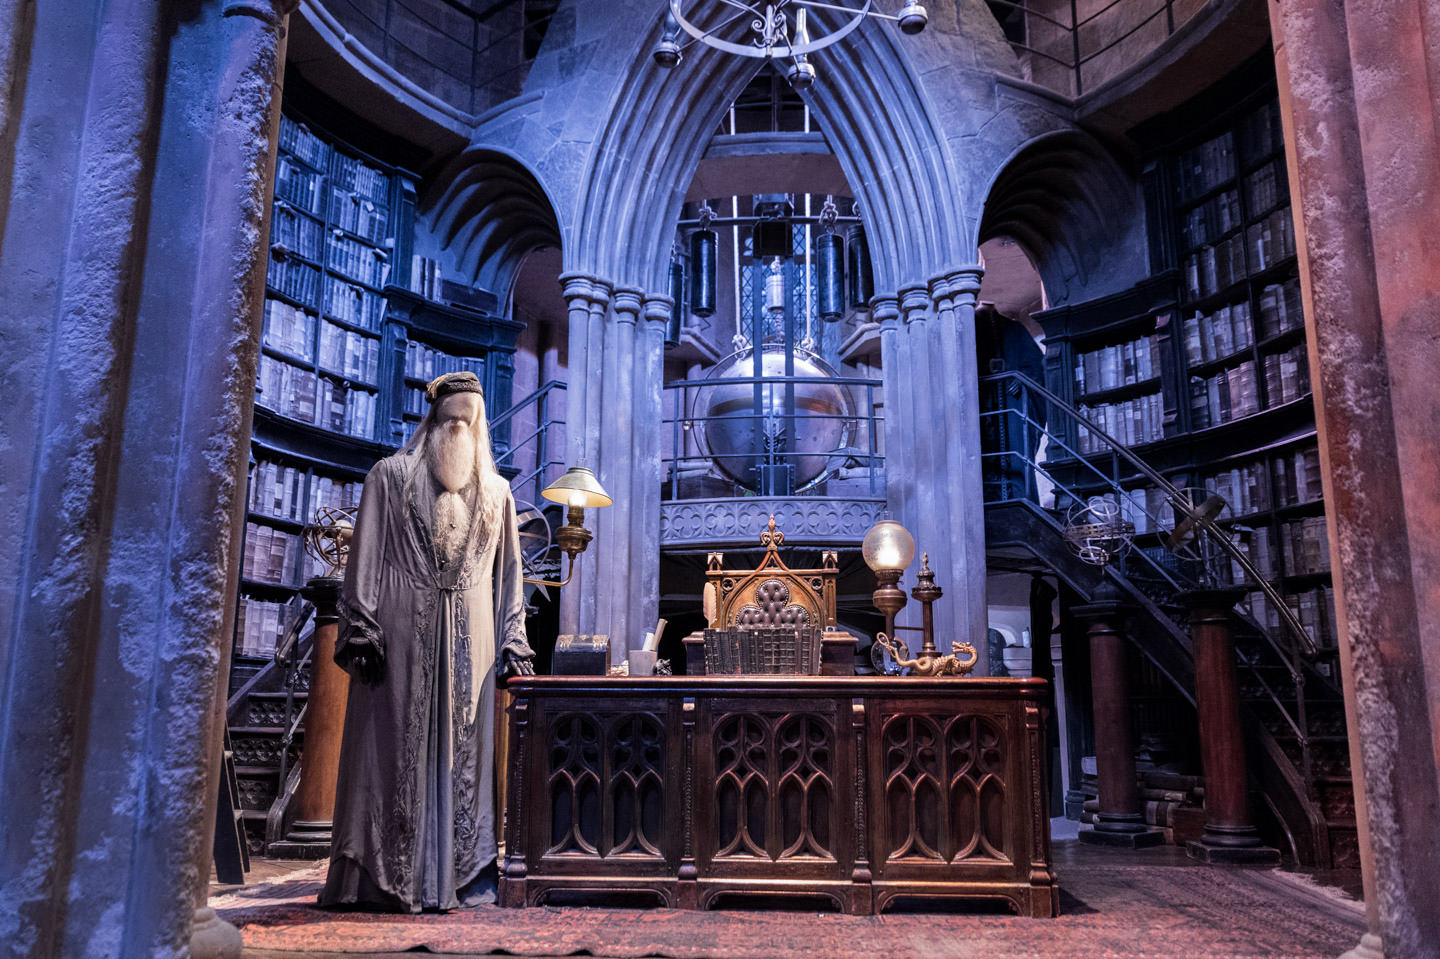 Blog-Mode-And-The-City-Lifestyle-Visite-Studios-Harry-Potter-Londres-12